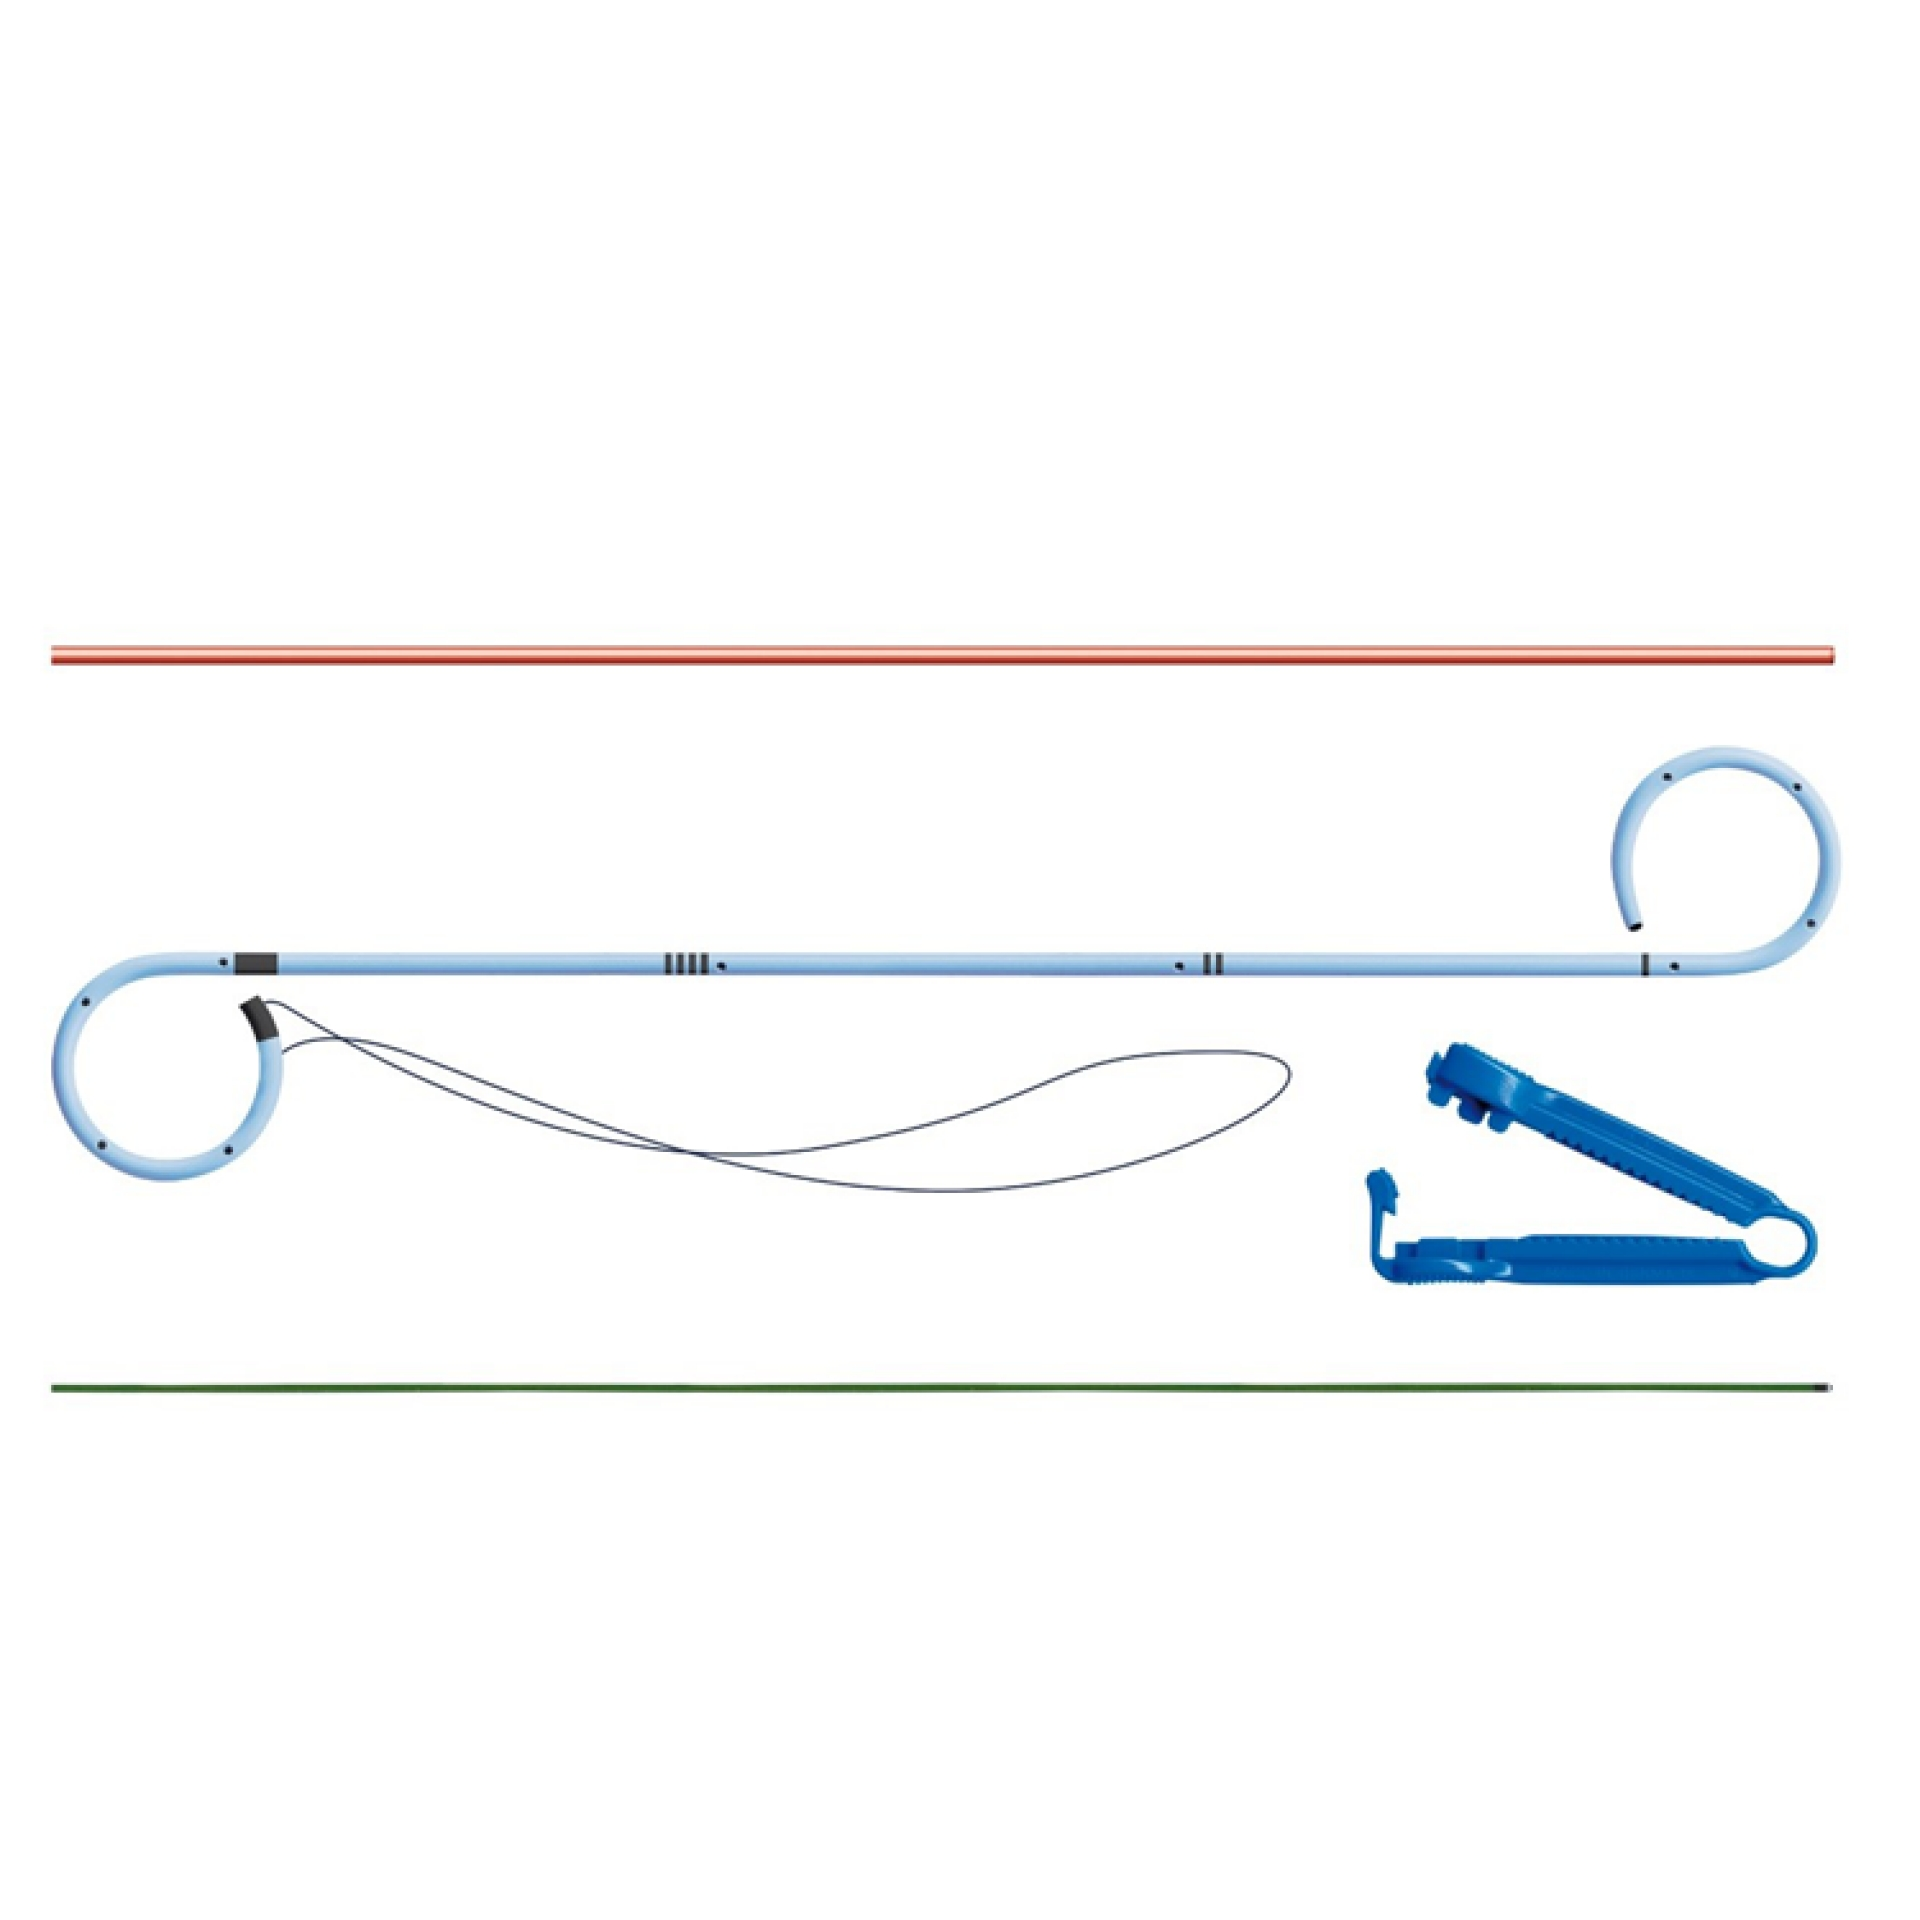 Ureteral Stent Set (OptiSoft)